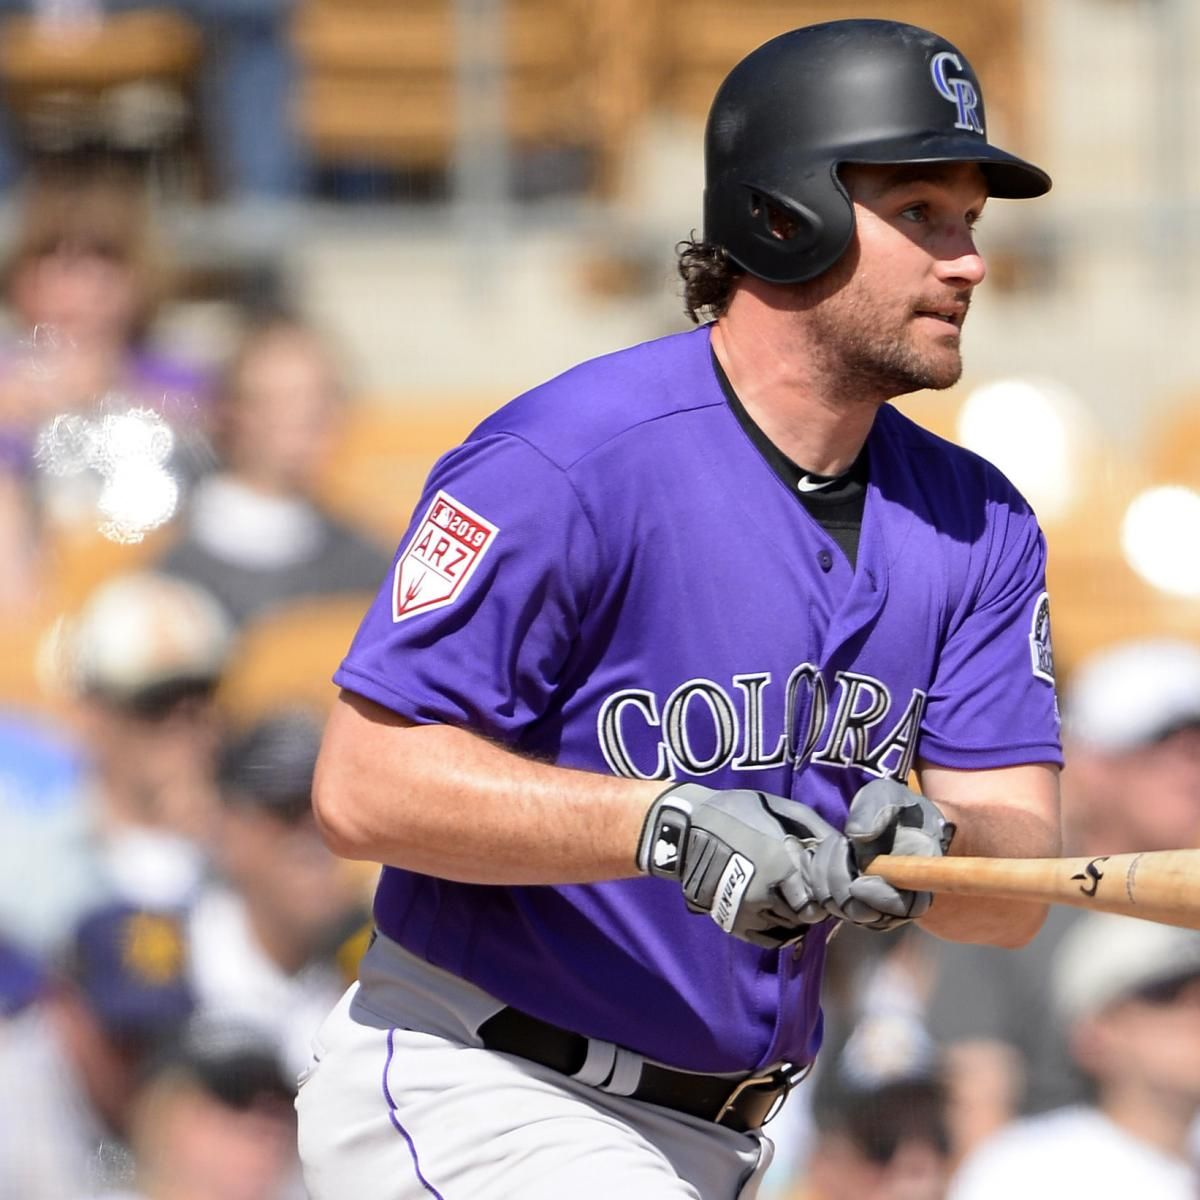 Colorado Rockies announced Monday first baseman Daniel Murphy has been placed on the injured list after being diagnosed with an avulsion fracture of the left index finger...sports